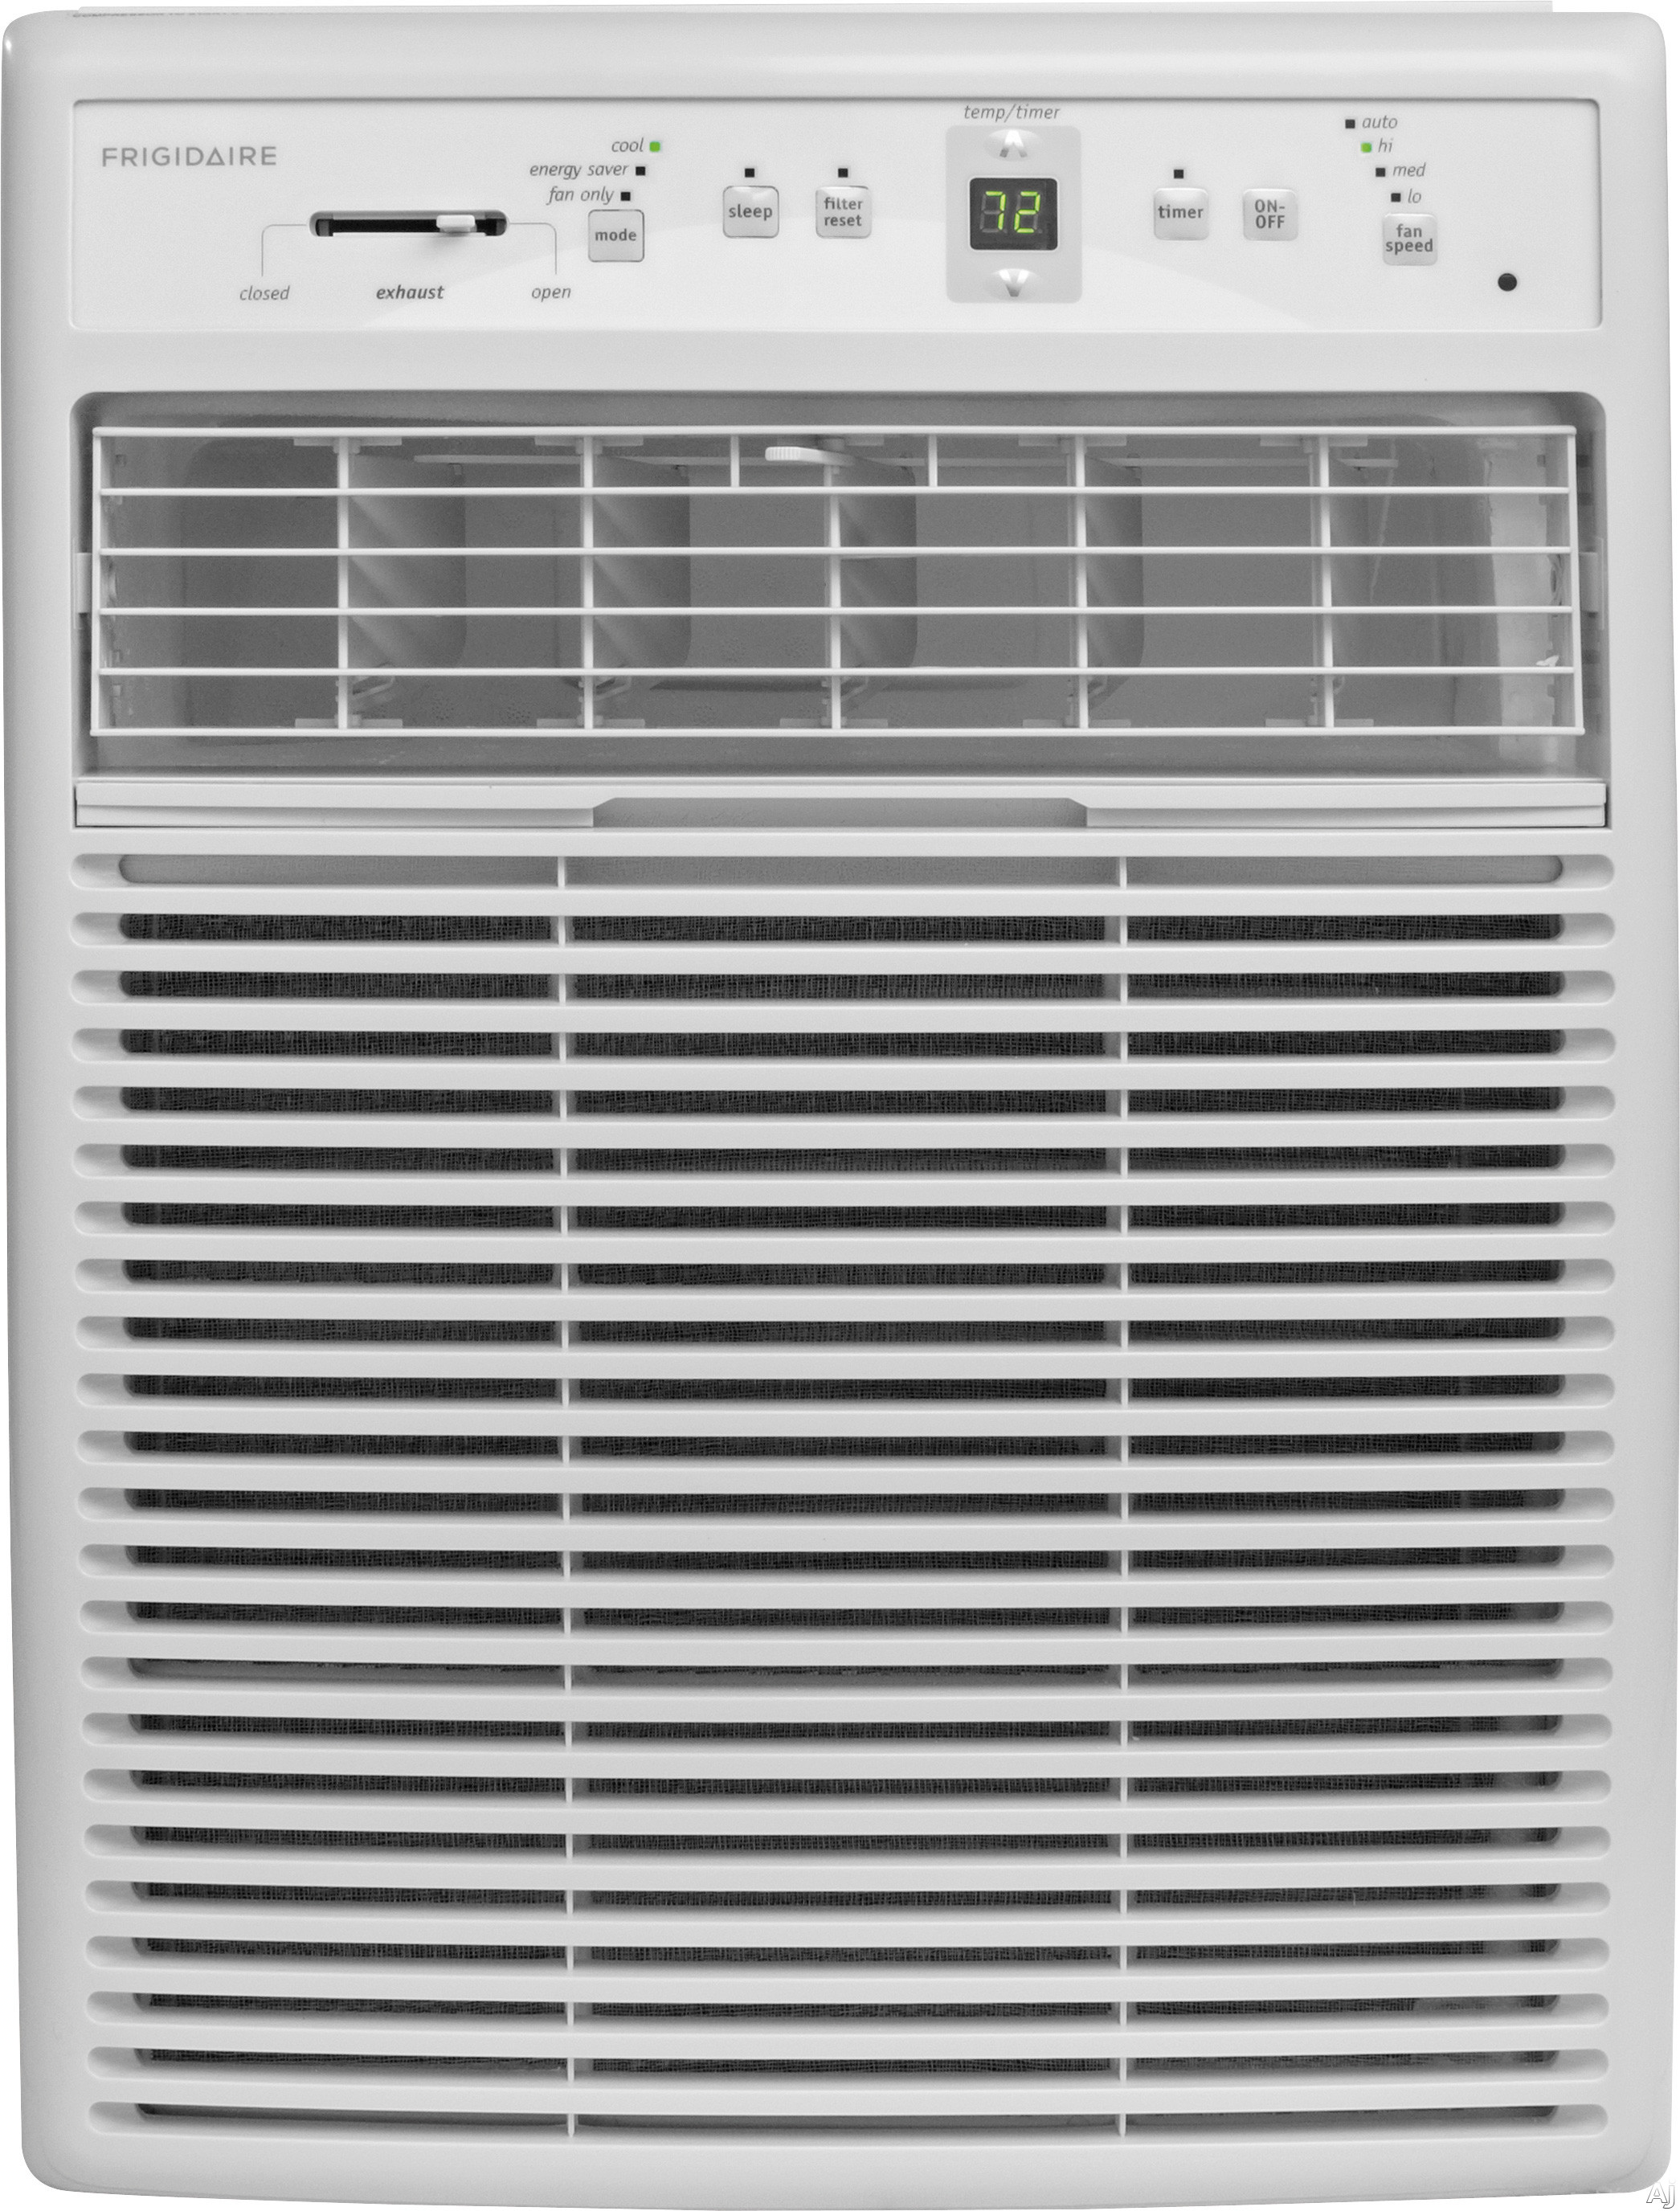 Frigidaire FFRS1022R1 10,000 BTU Slider/Casement Window Air Conditioner with 10.4 EER, R-410A Refrigerant, 3.4 Pts/Hr Dehumidification, 450 sq. ft. Cooling Area and Remote Control FFRS1022R1